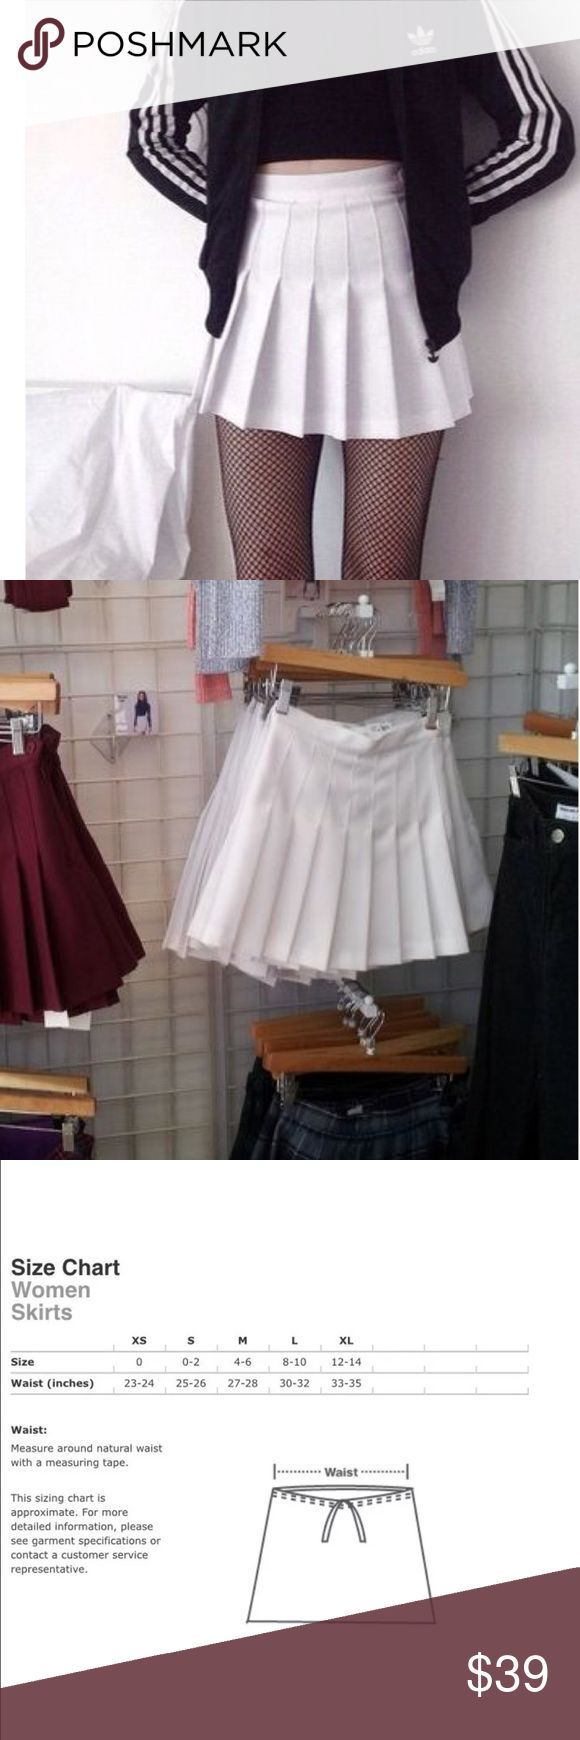 American Apparel white Pleated tennis skirt xs American Apparel skirt. New with tags. American Apparel Skirts Mini